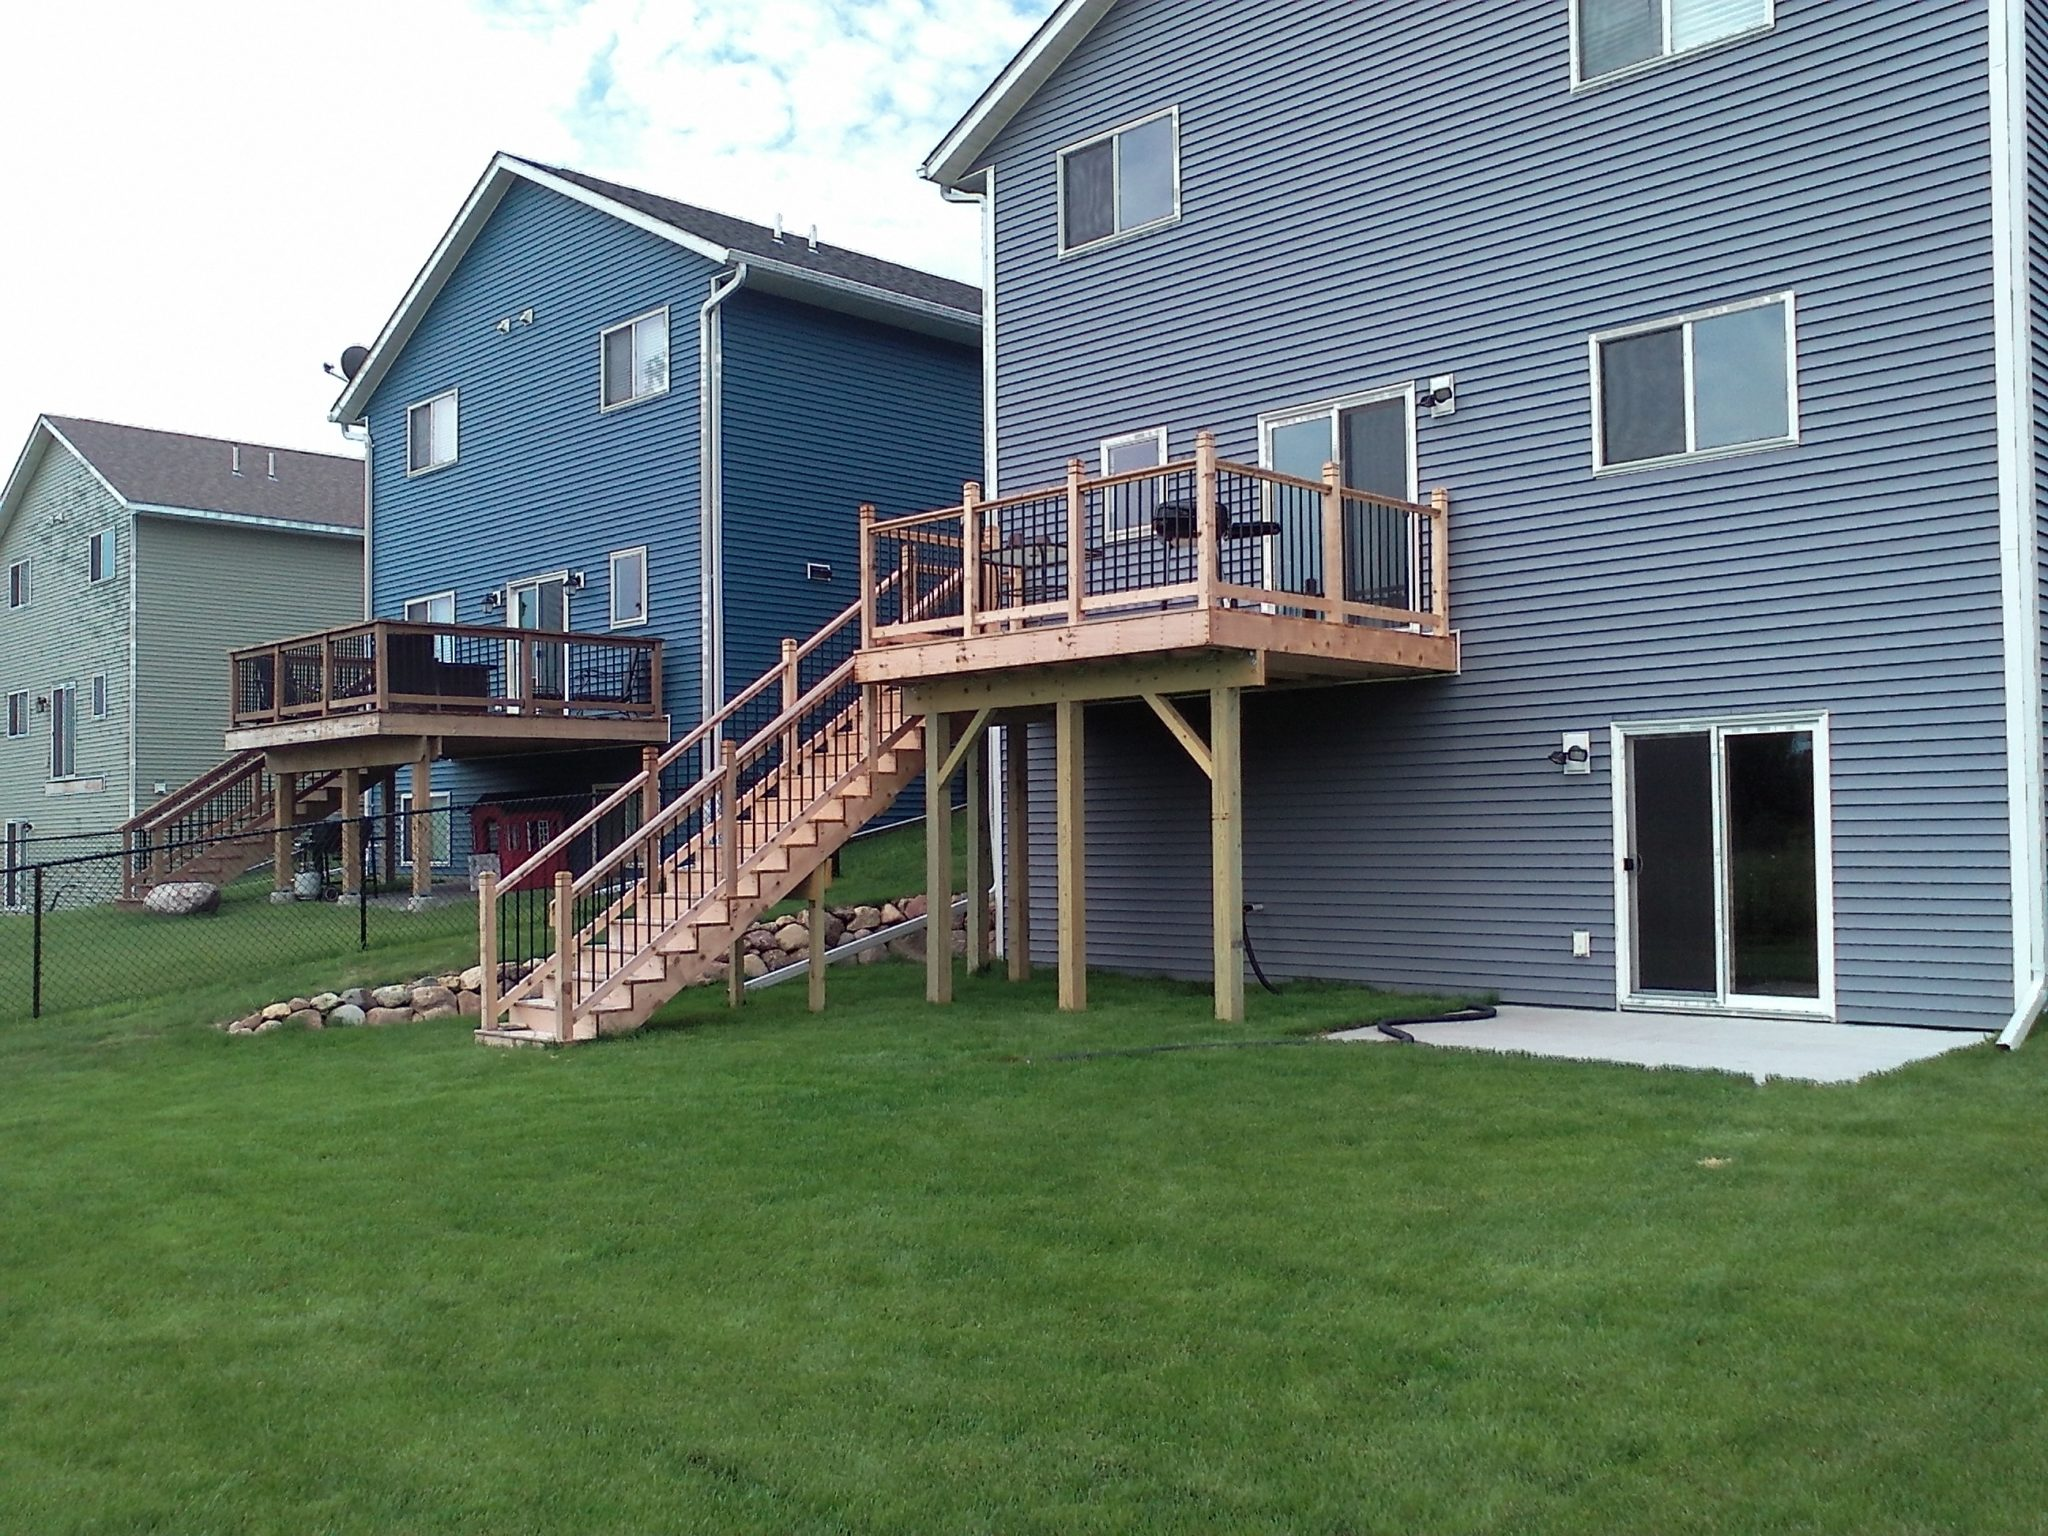 mankato-deck-and-railing-113348